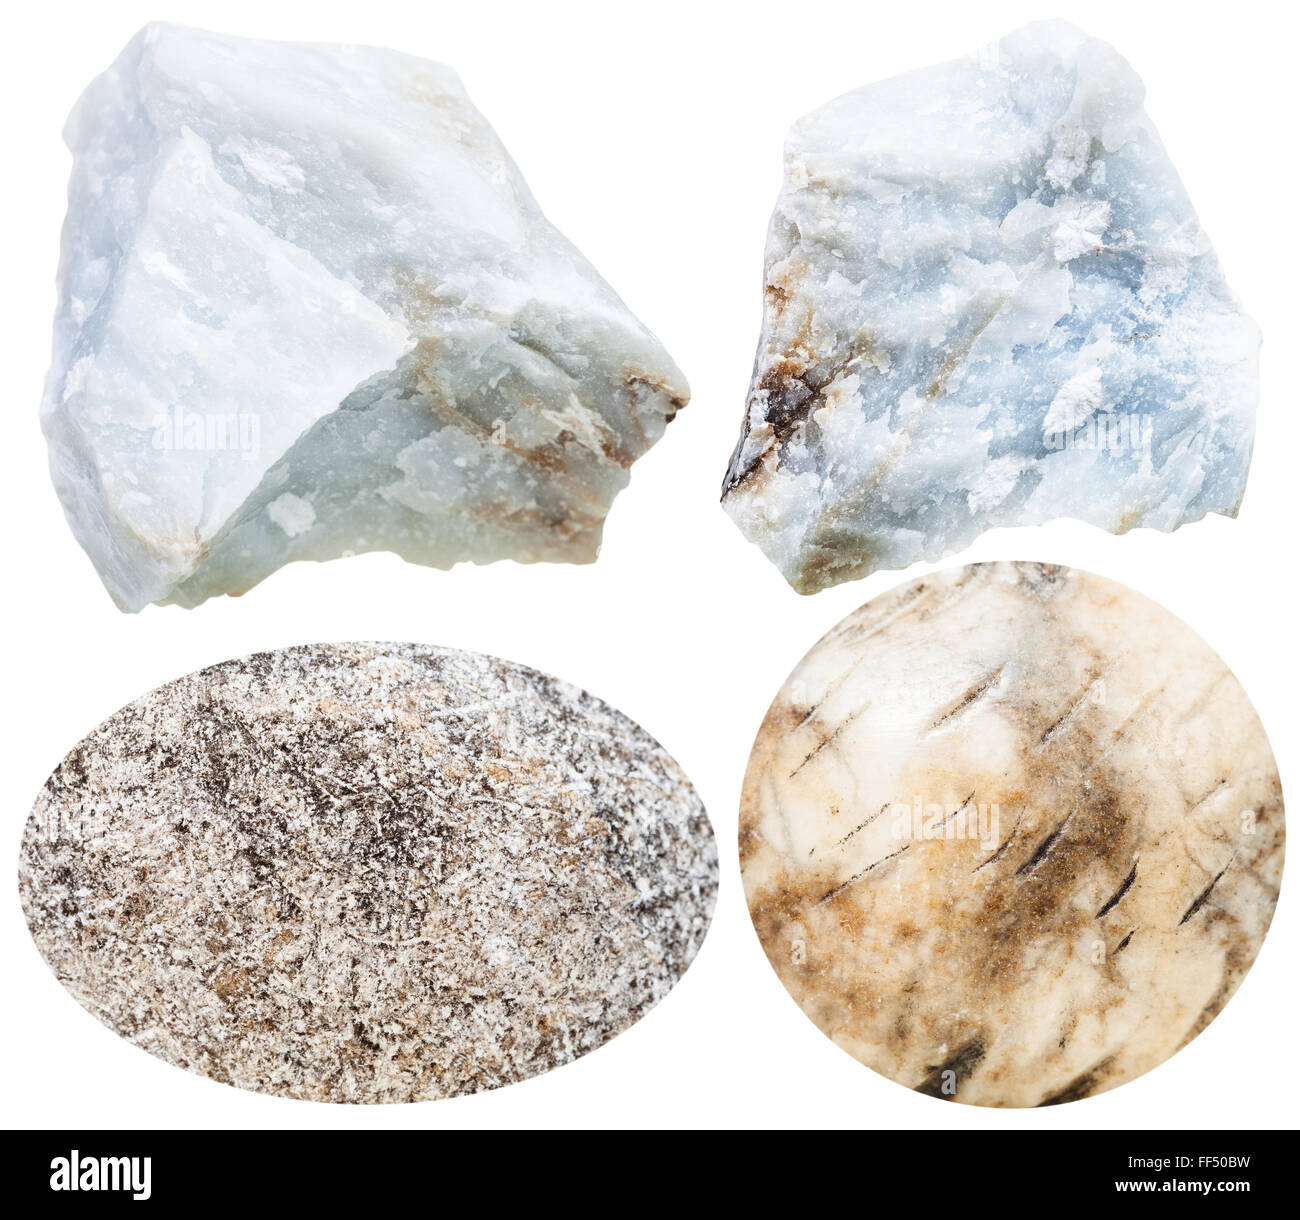 set of natural mineral stones - specimens of anhydrite cabochon gemstones and rocks isolated on white background - Stock Image